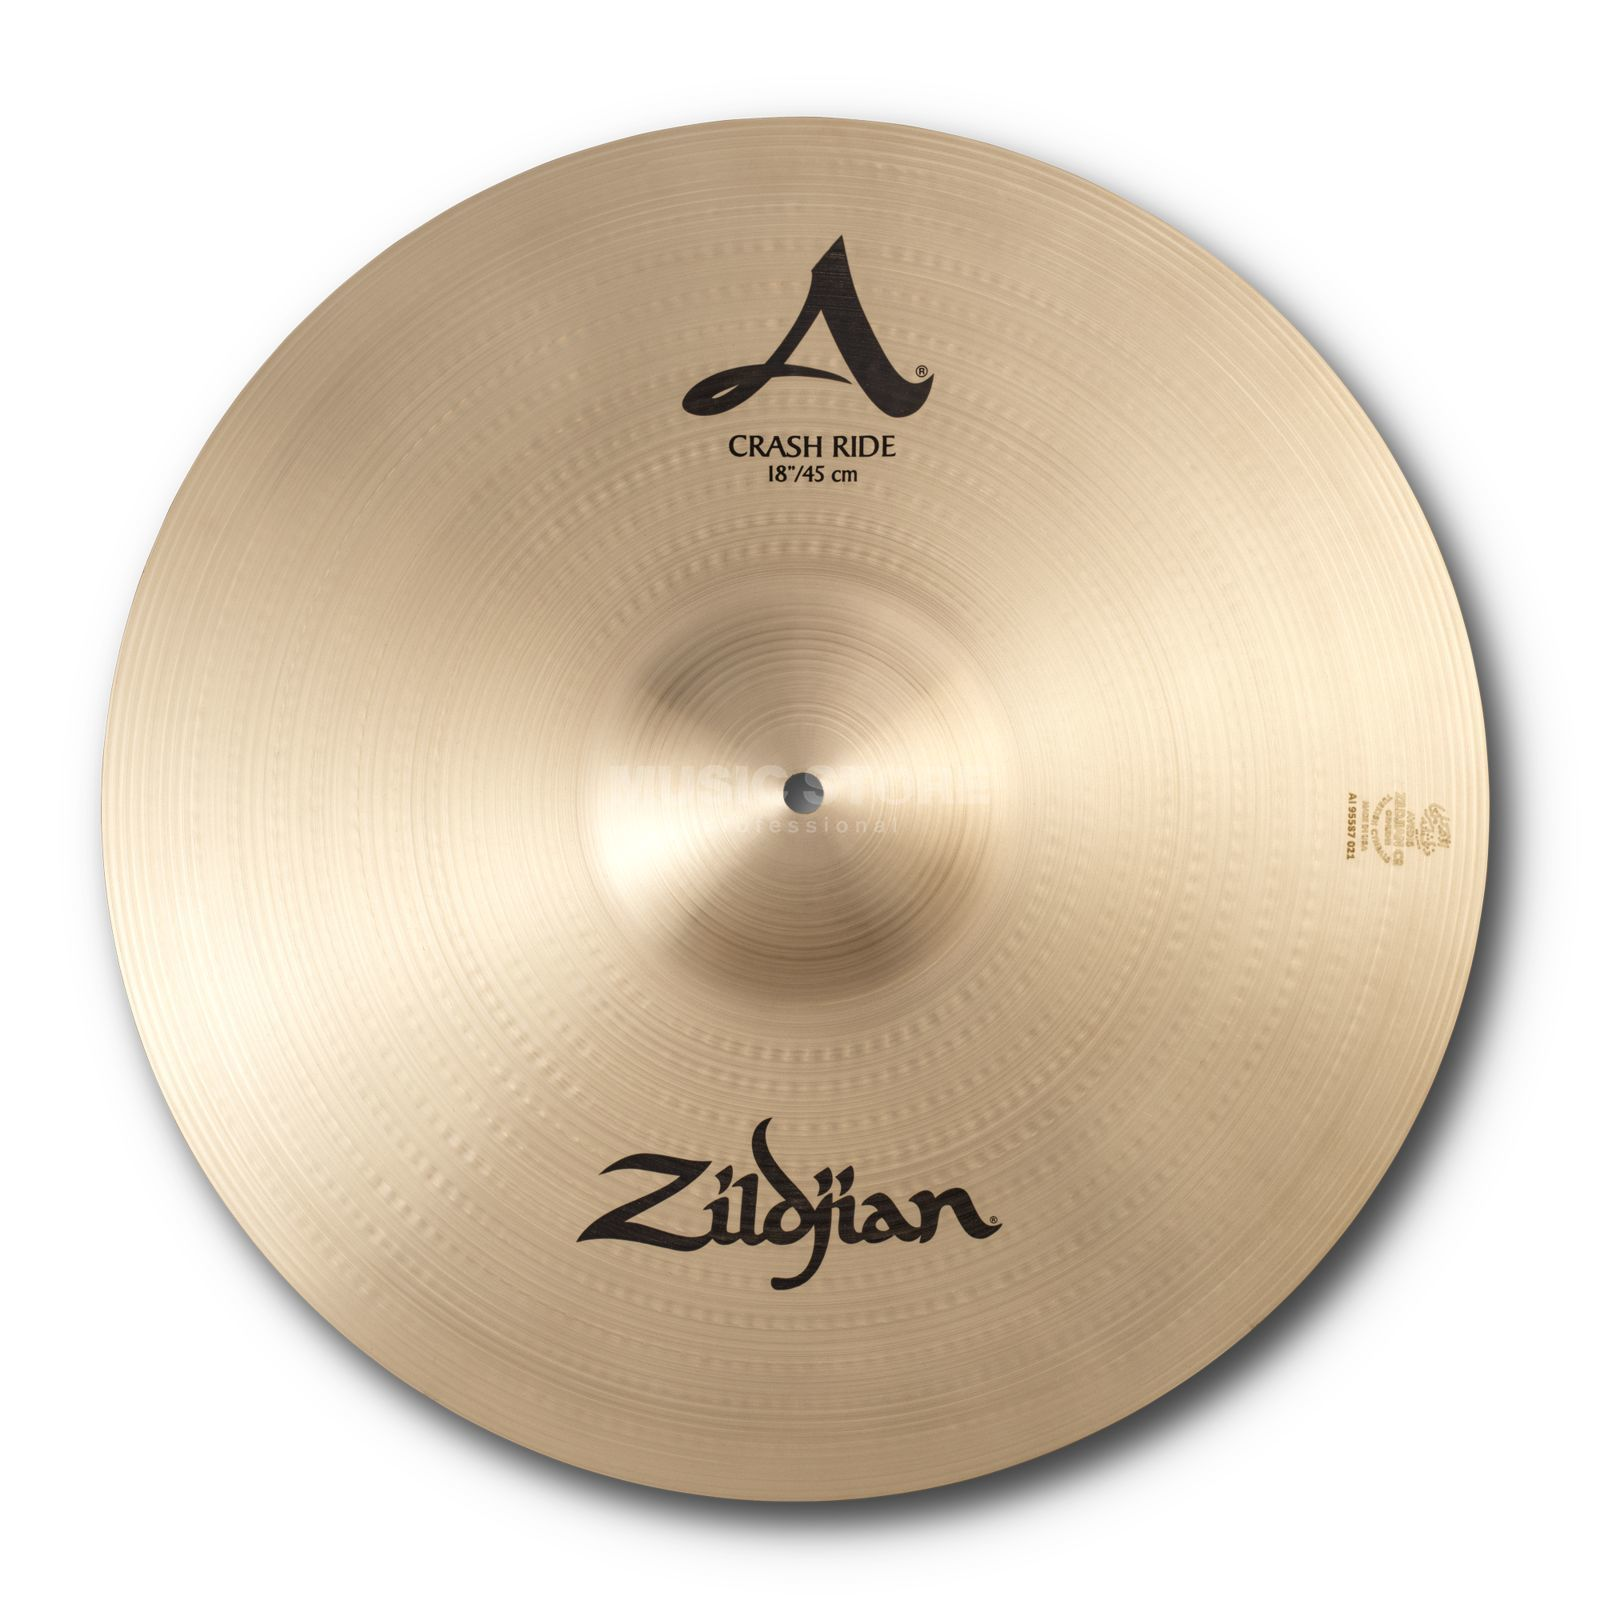 "Zildjian A' Zildjian Crash Ride 18"", Traditional Finish Produktbild"